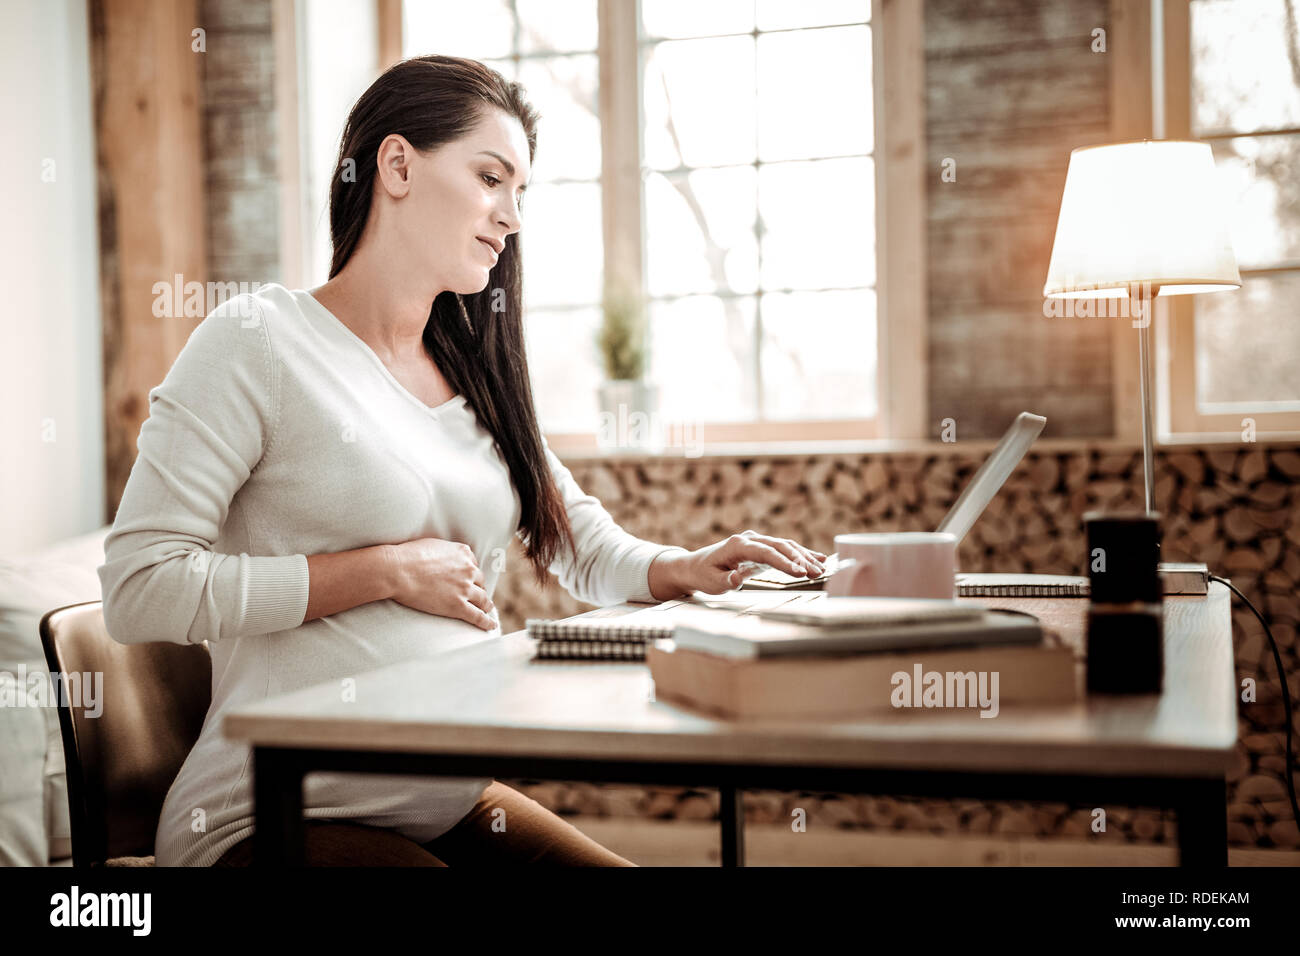 Serious pregnant young woman doing her job - Stock Image